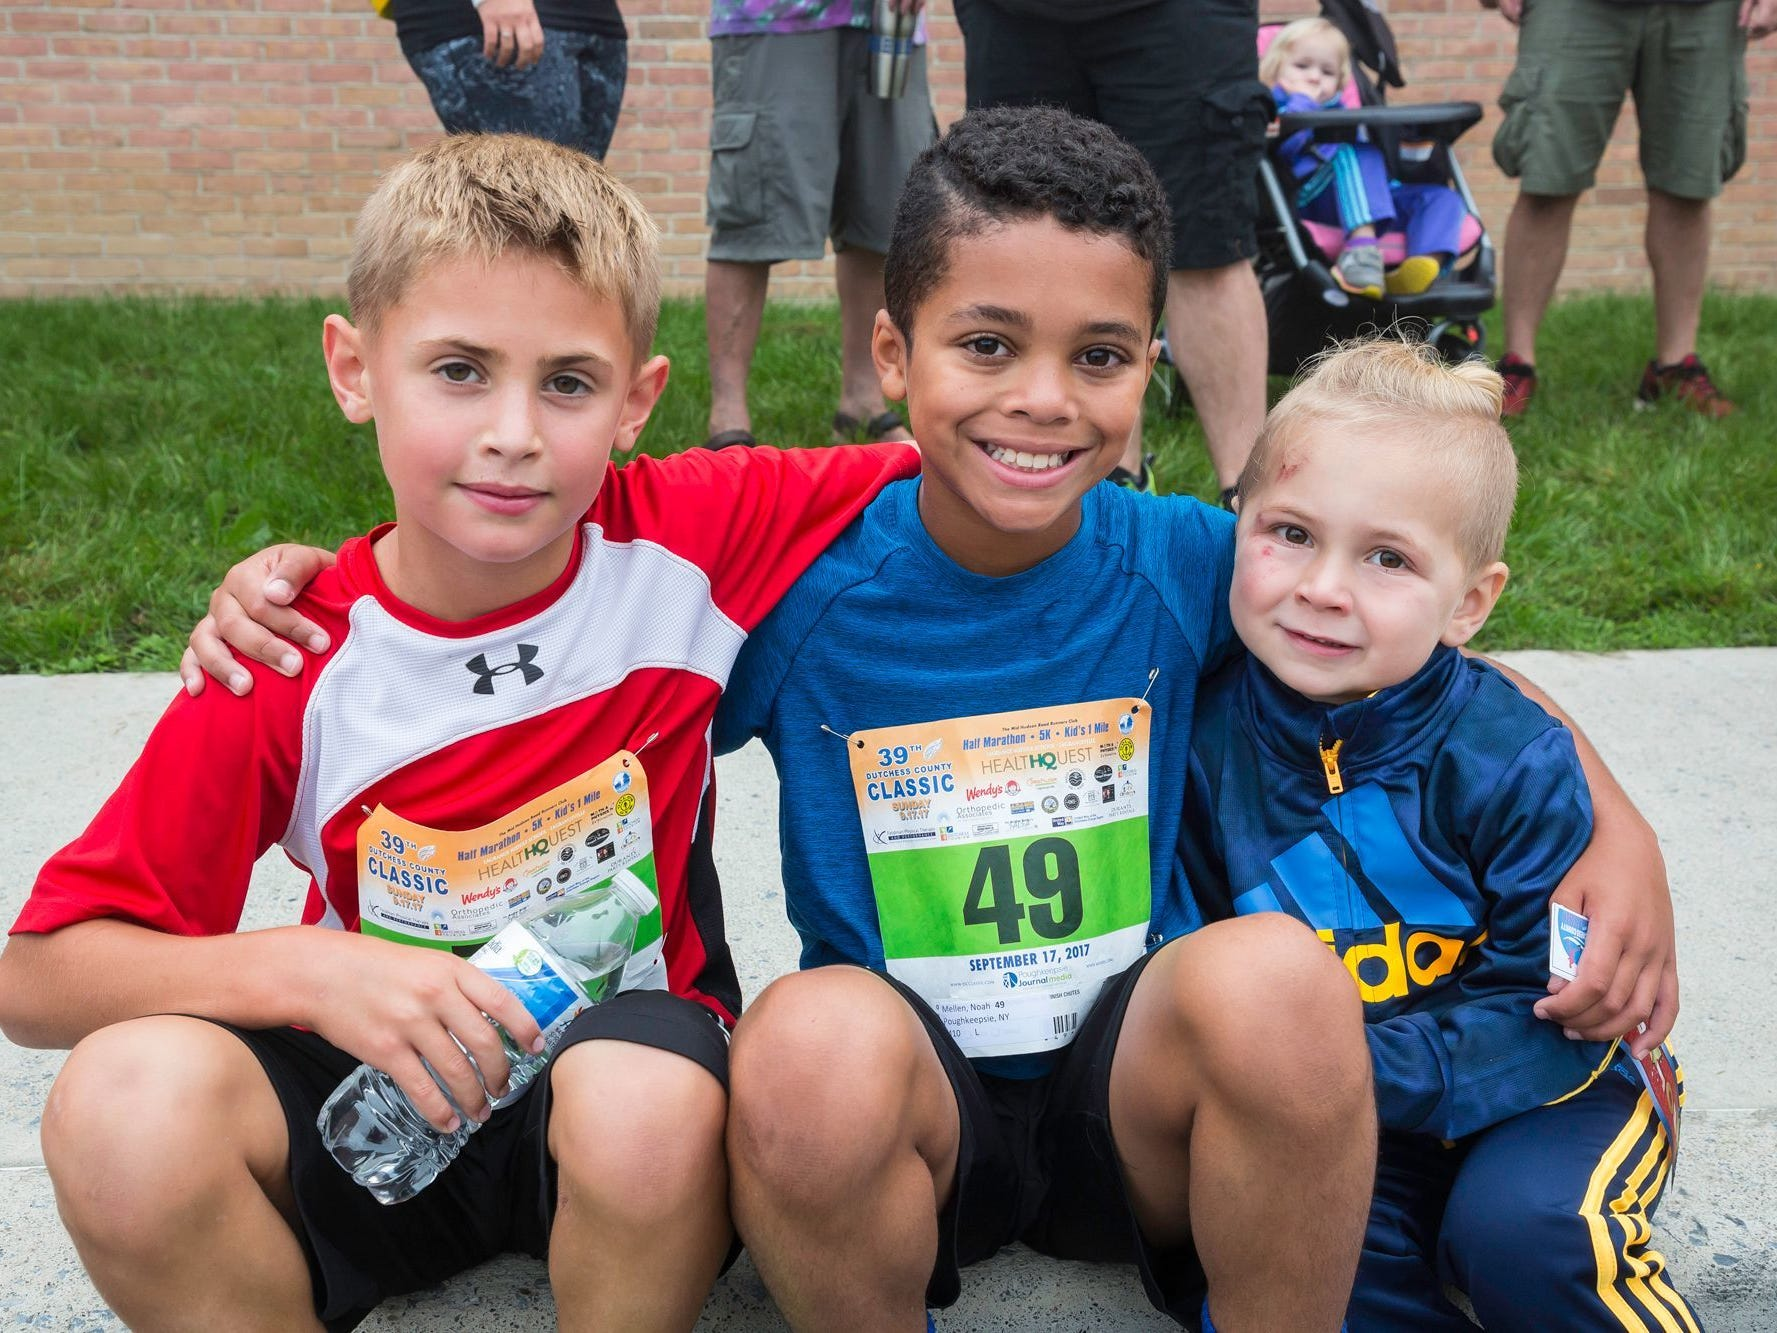 Kids' mile boys winner Noah Mellen, center, sits with Reese Steinhous and Oliver Mellen after the kids mile race last September.